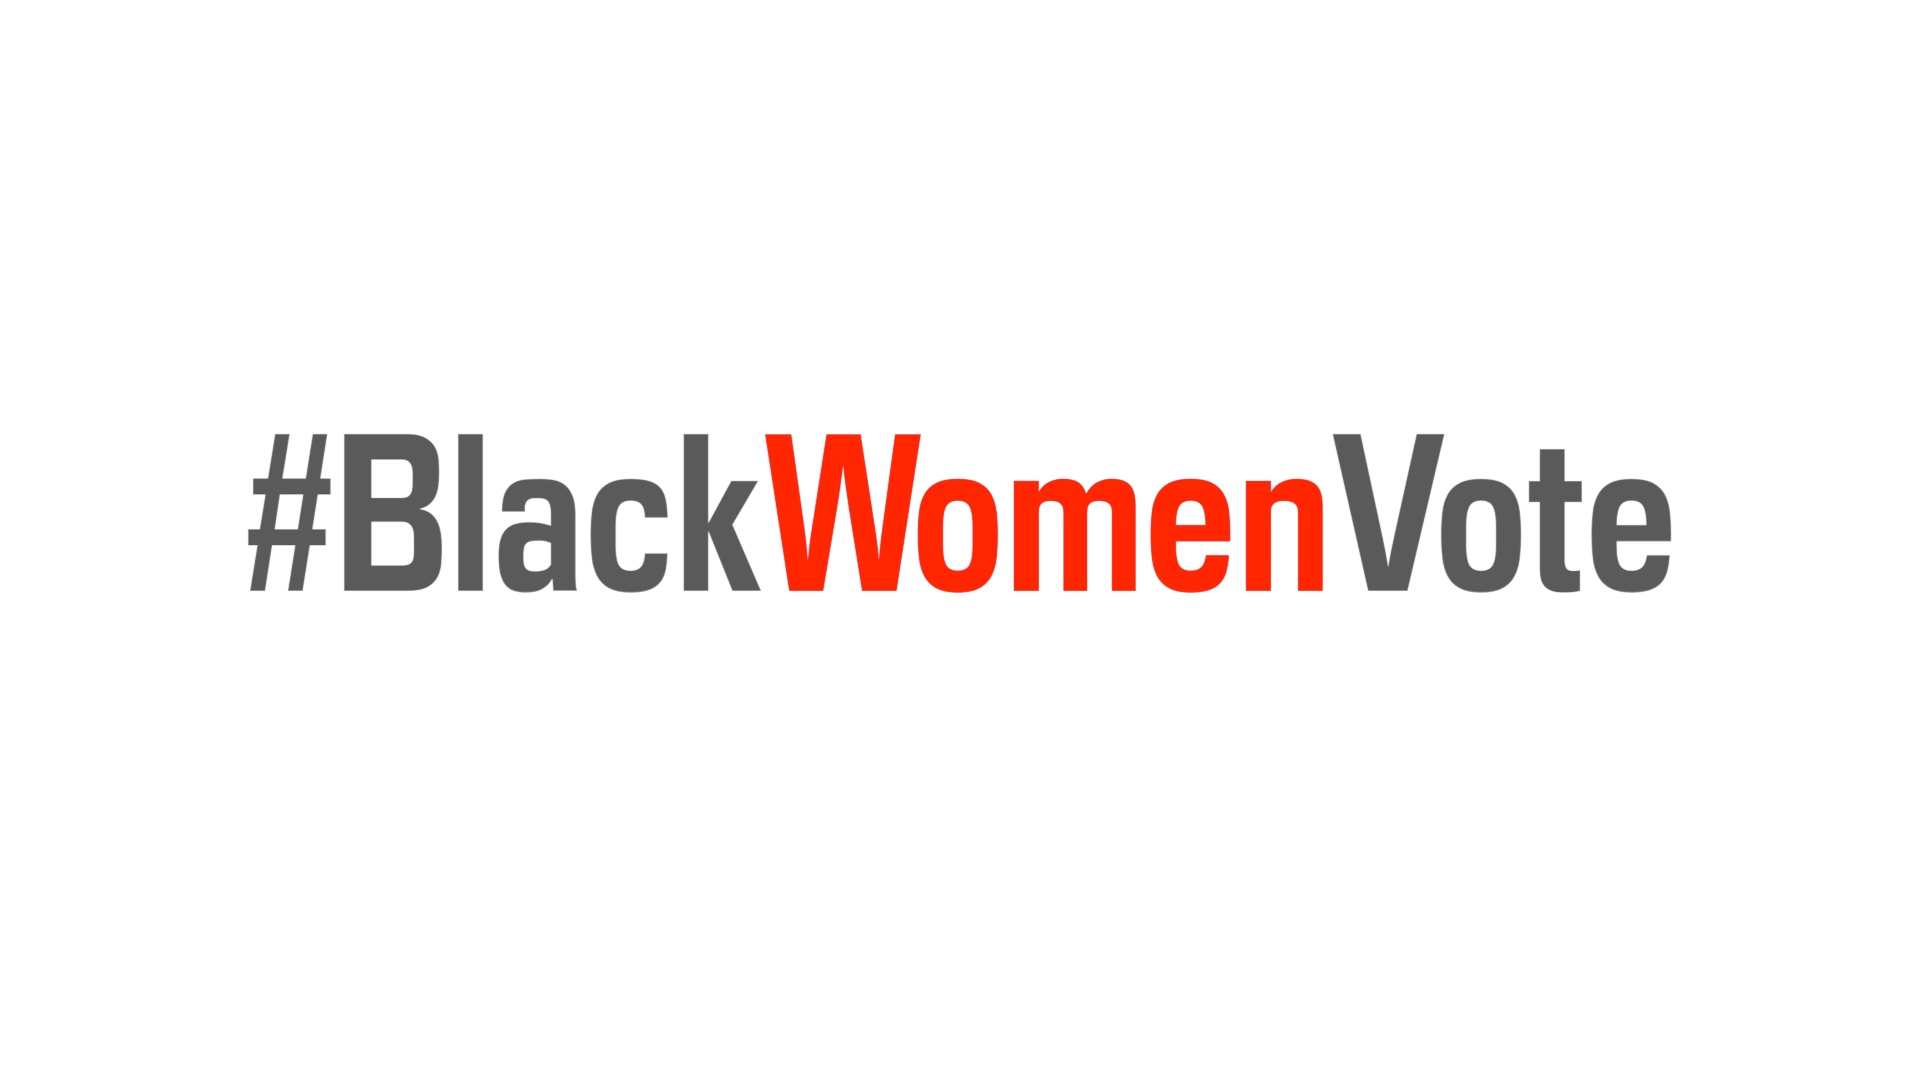 Blackwomenvote_logo_grey_and_red